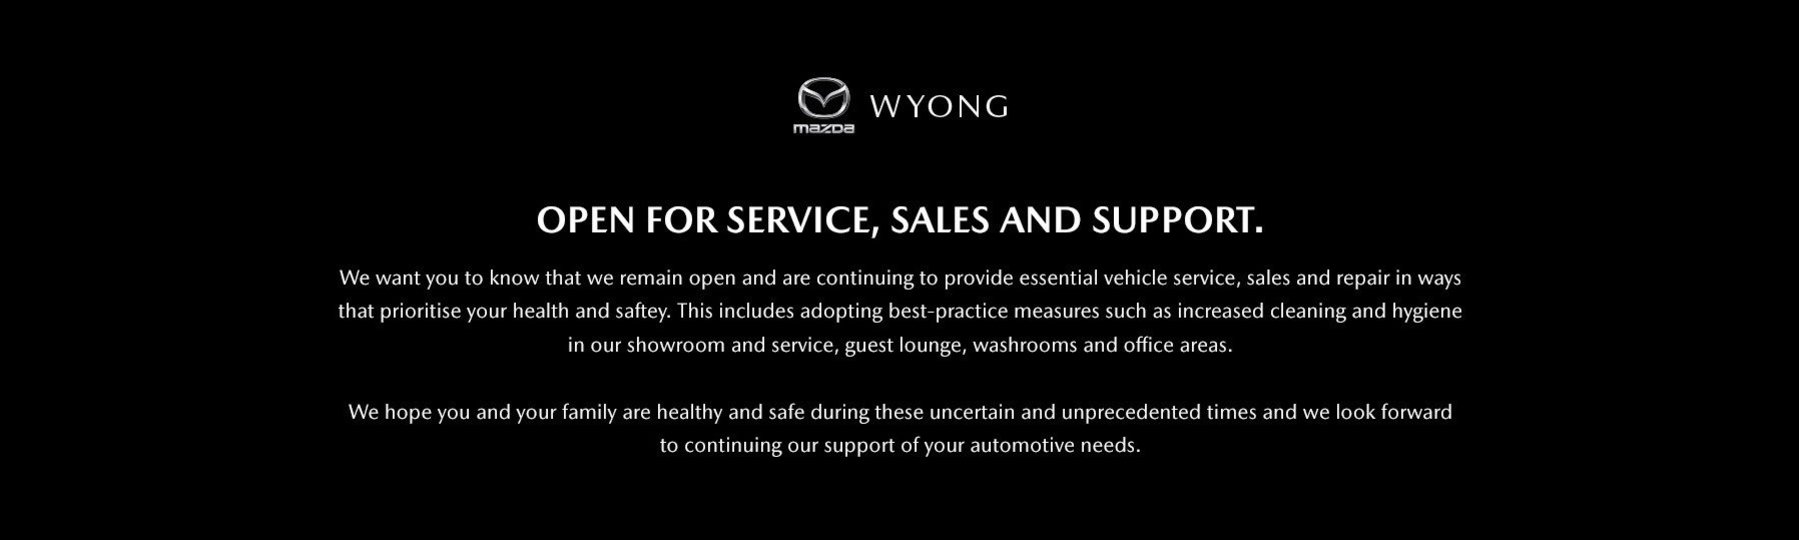 Open for service, sales and support